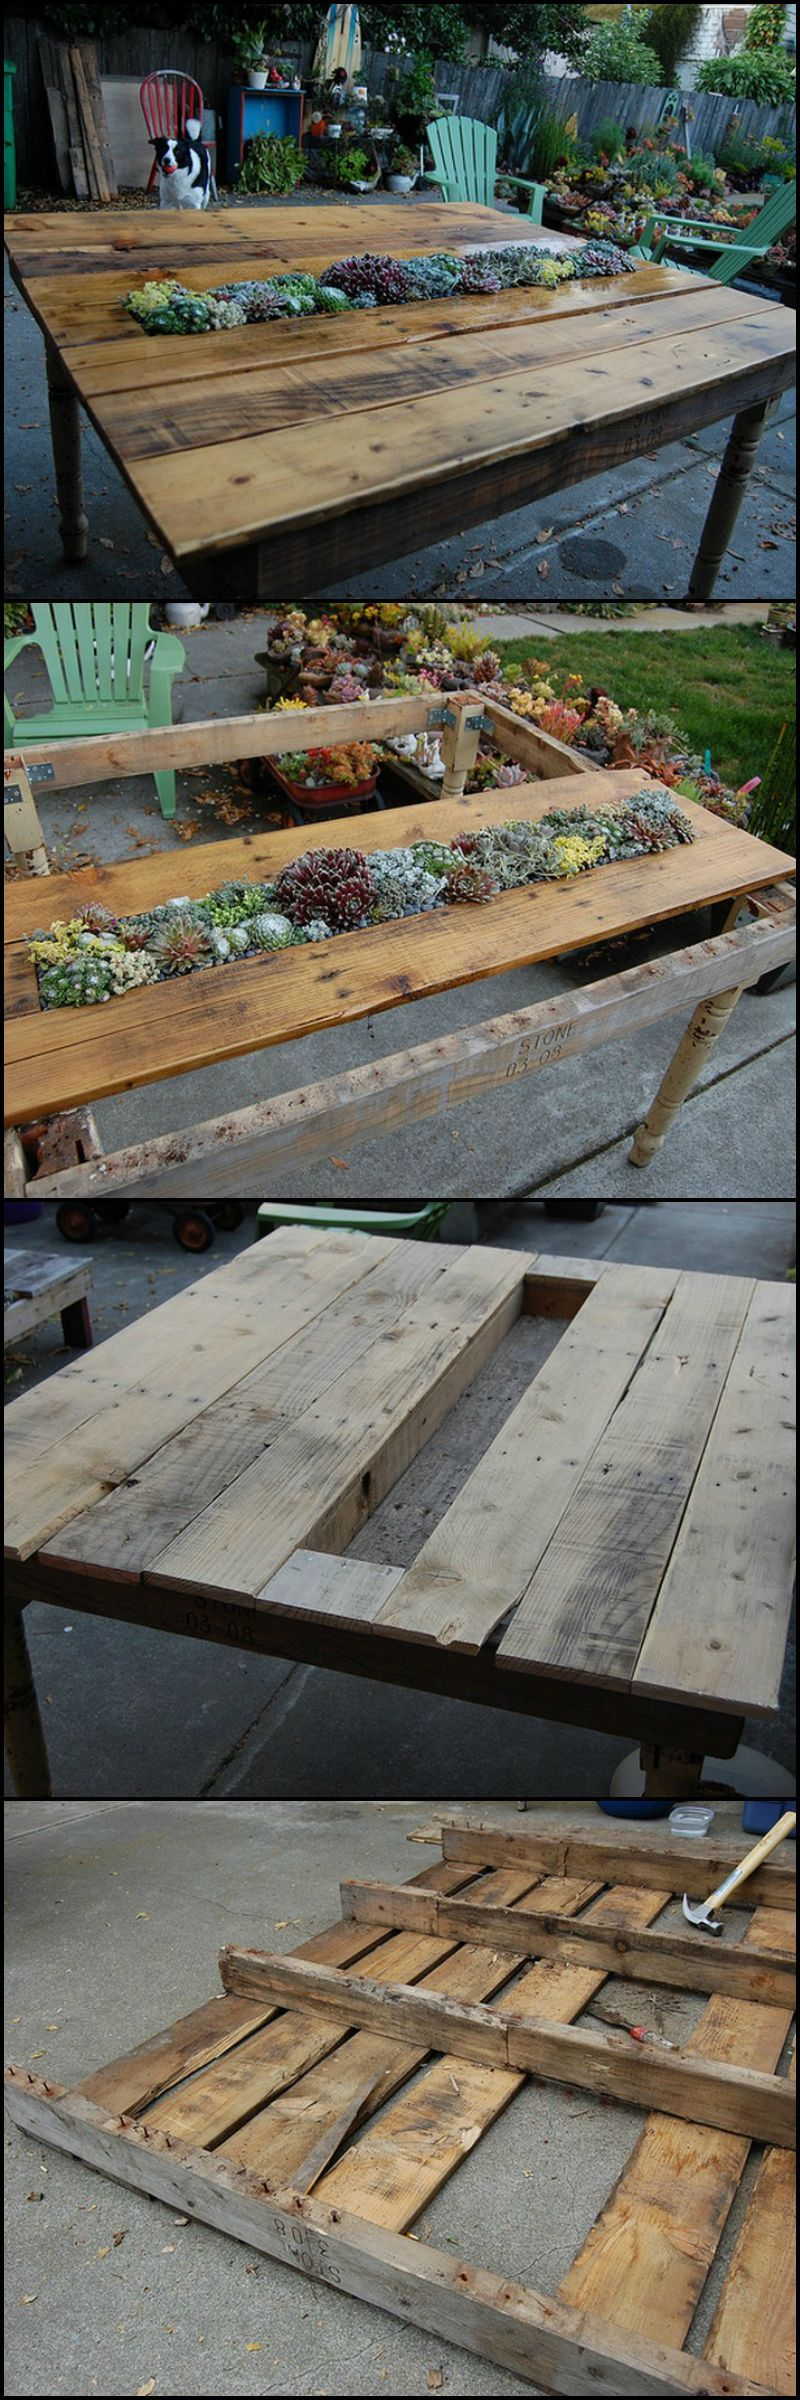 Diy succulent table recycled pallets and table legs http